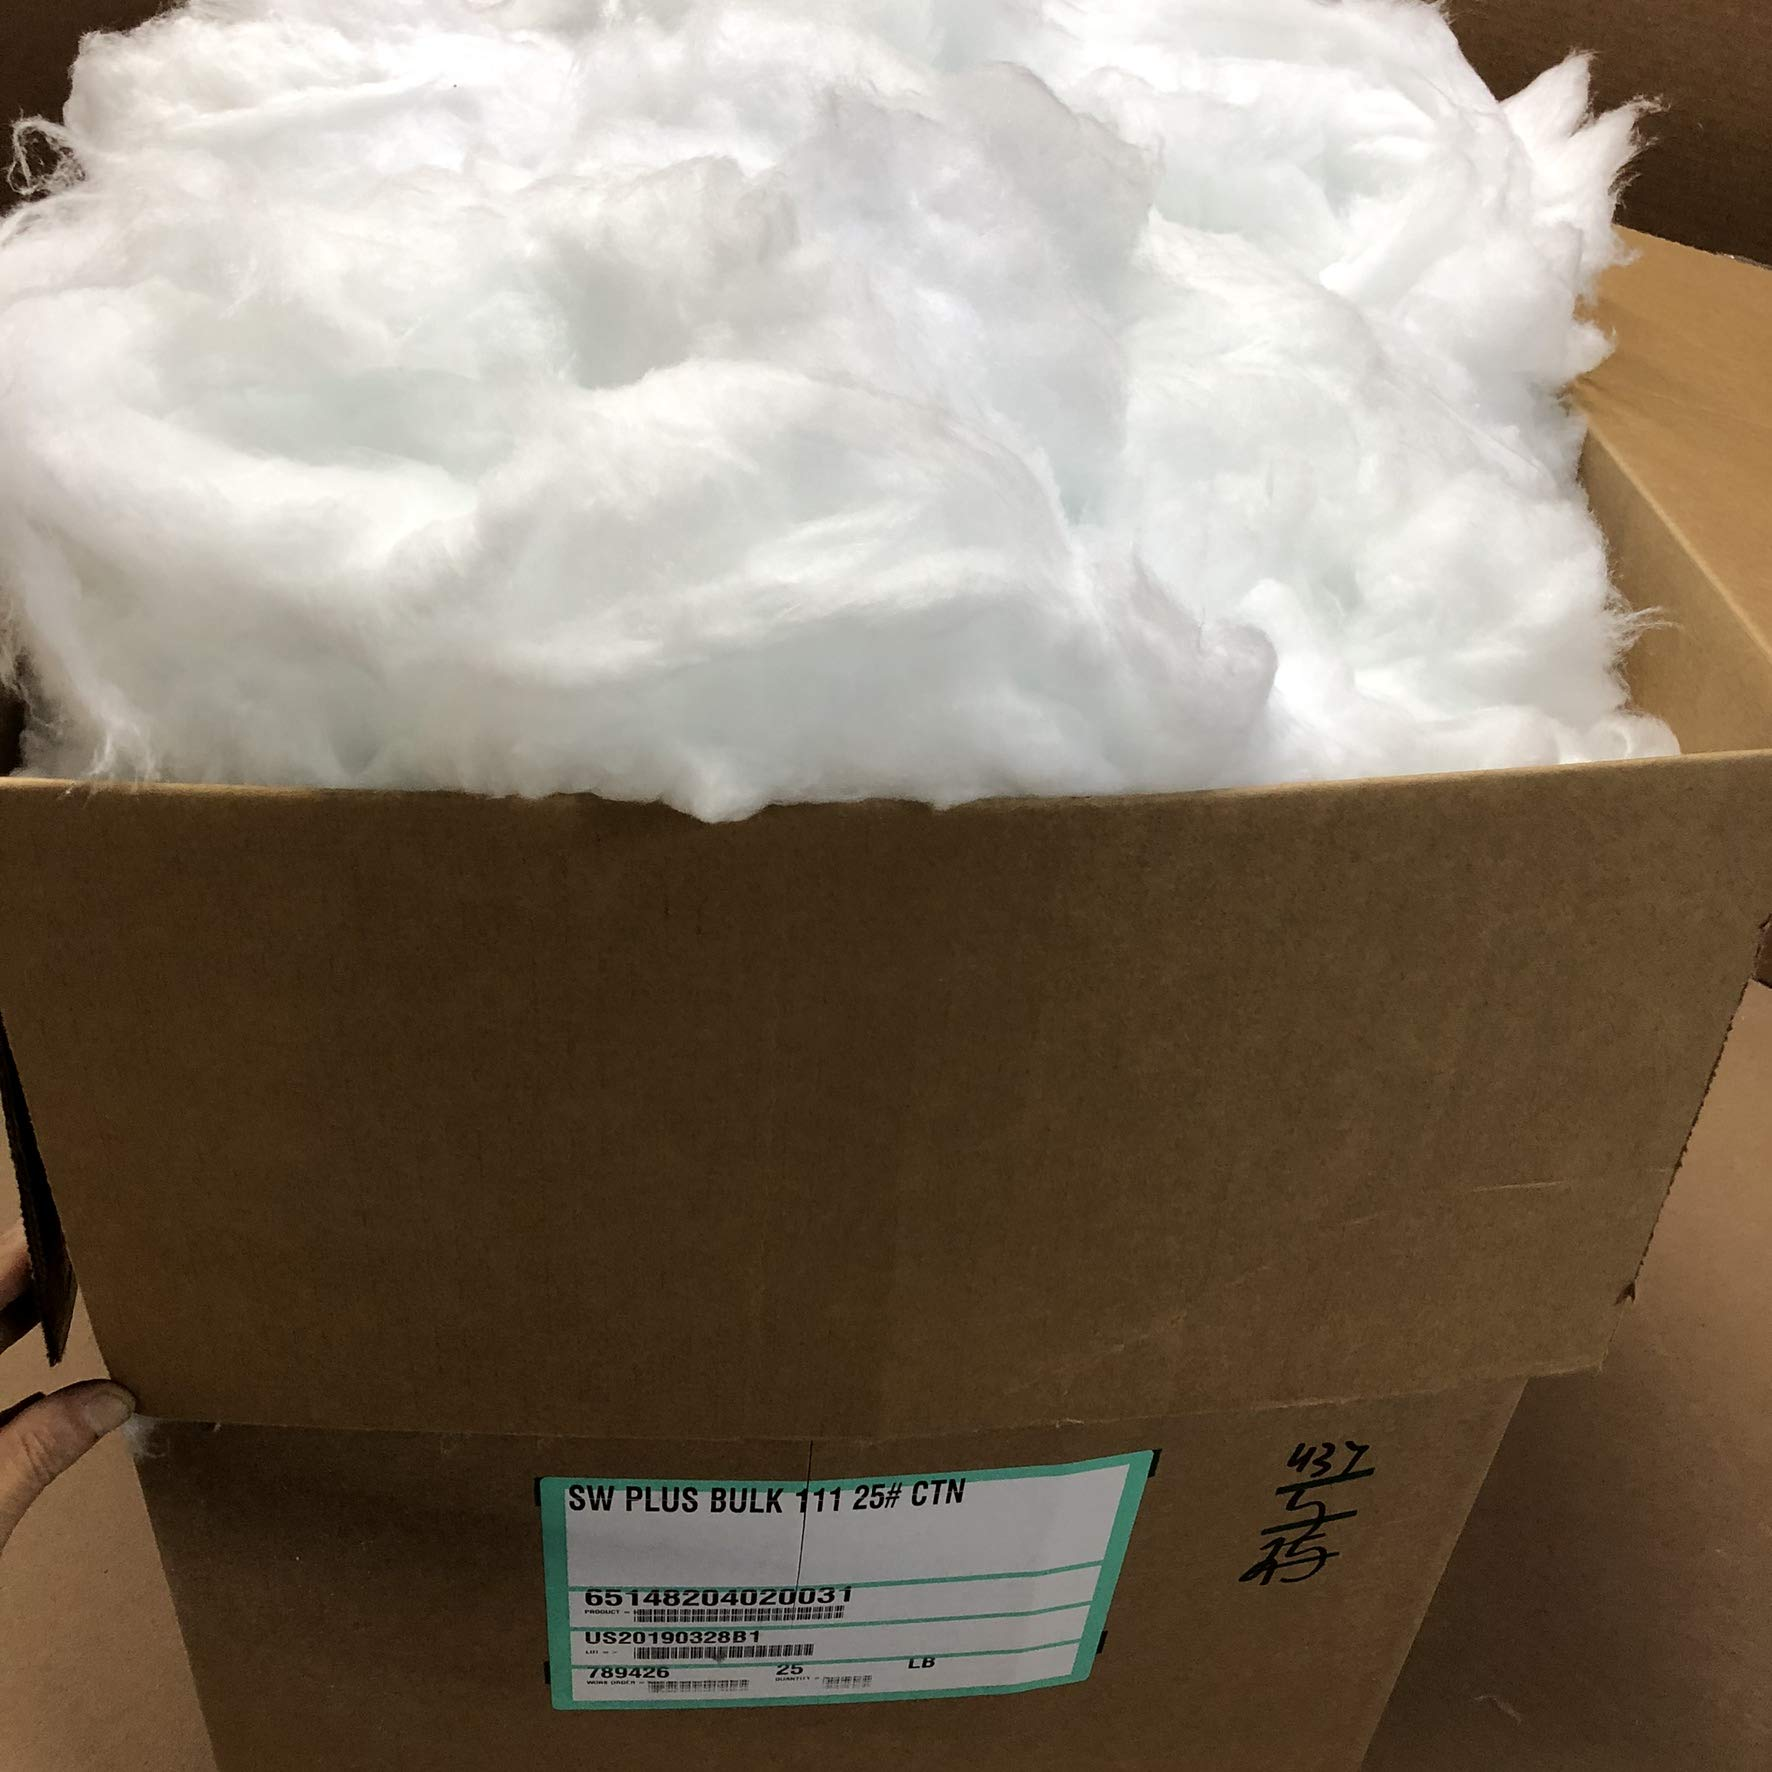 Lynn Manufacturing Bulk Fiber, Superwool Plus, Morgan Thermal Ceramics, Lubricated, 25lb Carton by Lynn Manufacturing